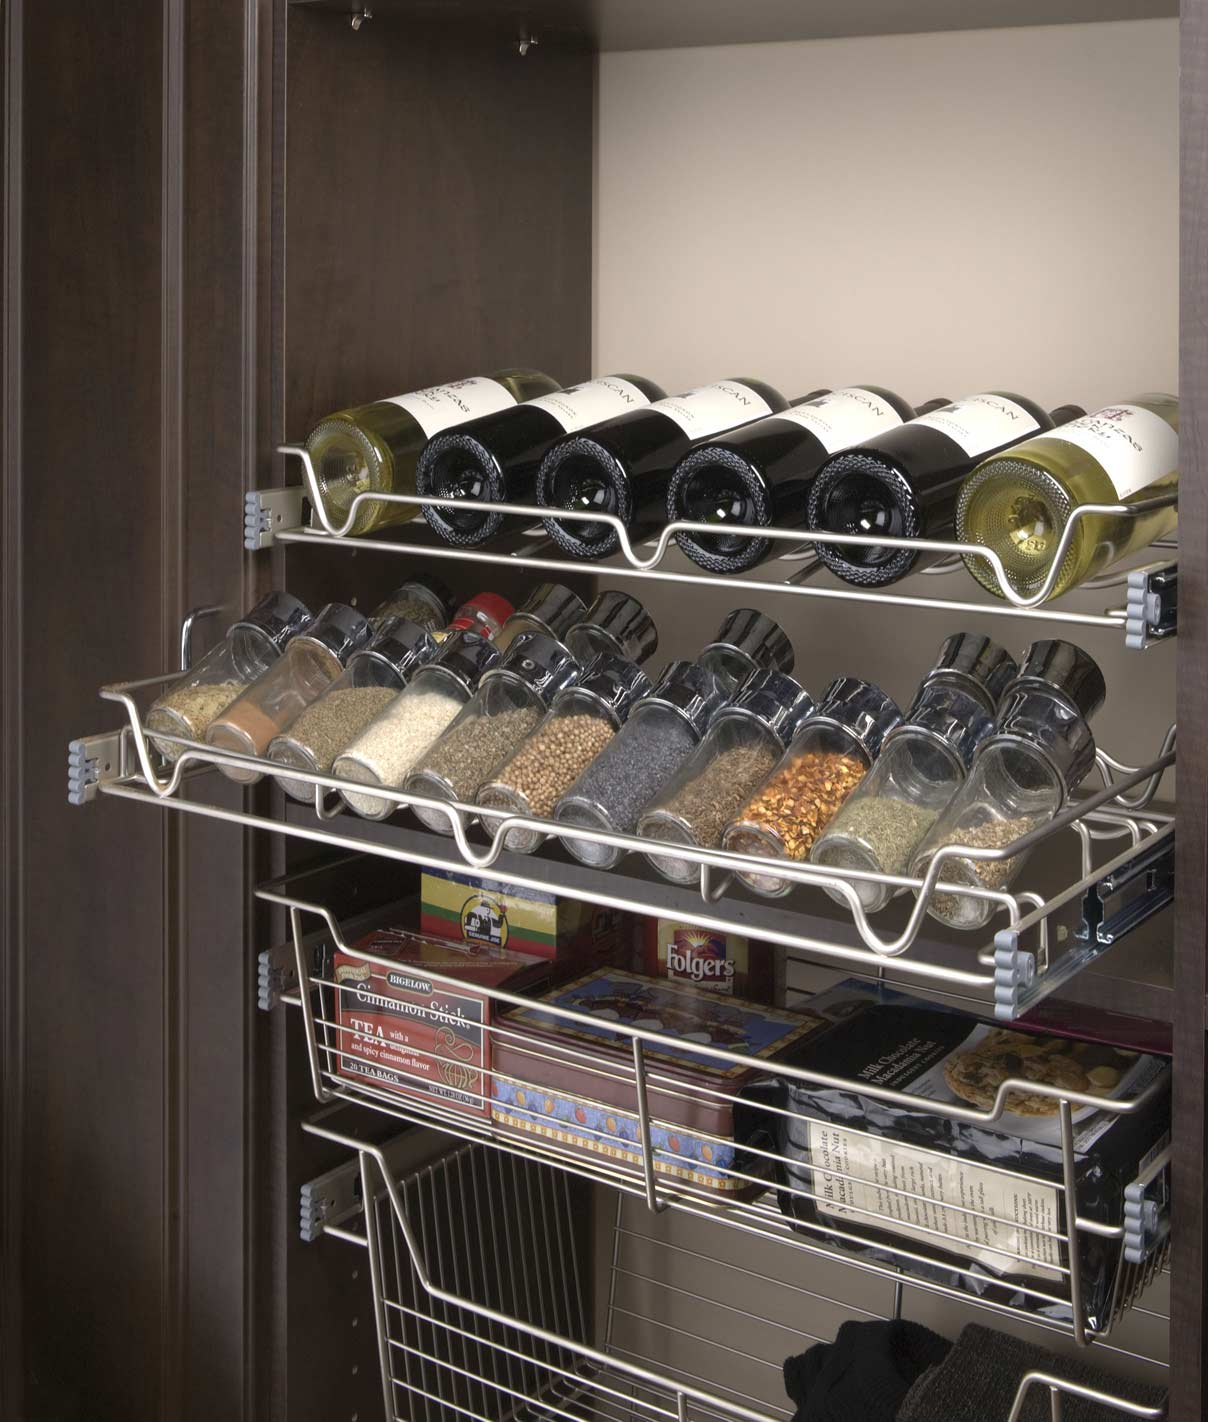 Satin Wire Rack, Spice Rack, and Basket